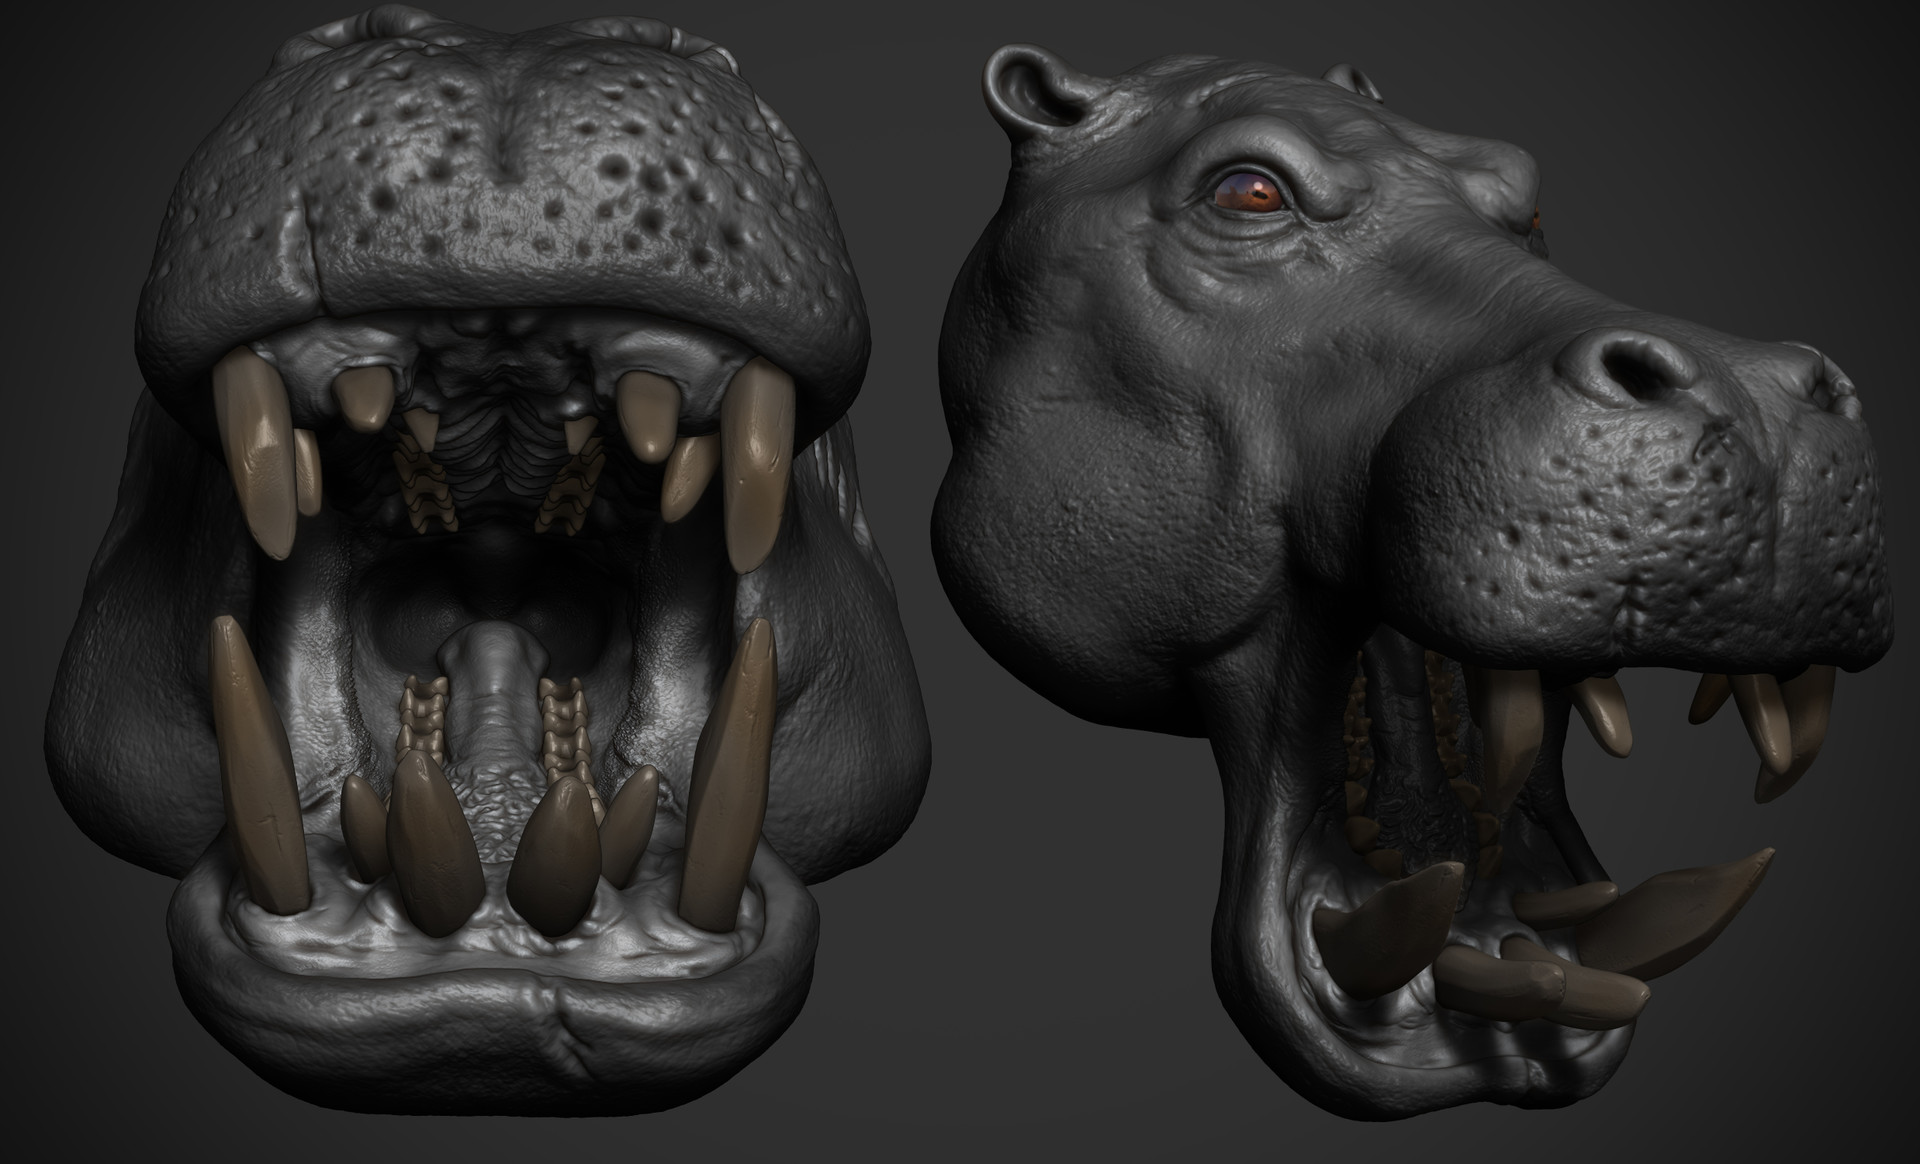 Omar chaouch hippo animal warrior omar chaouch wip 11